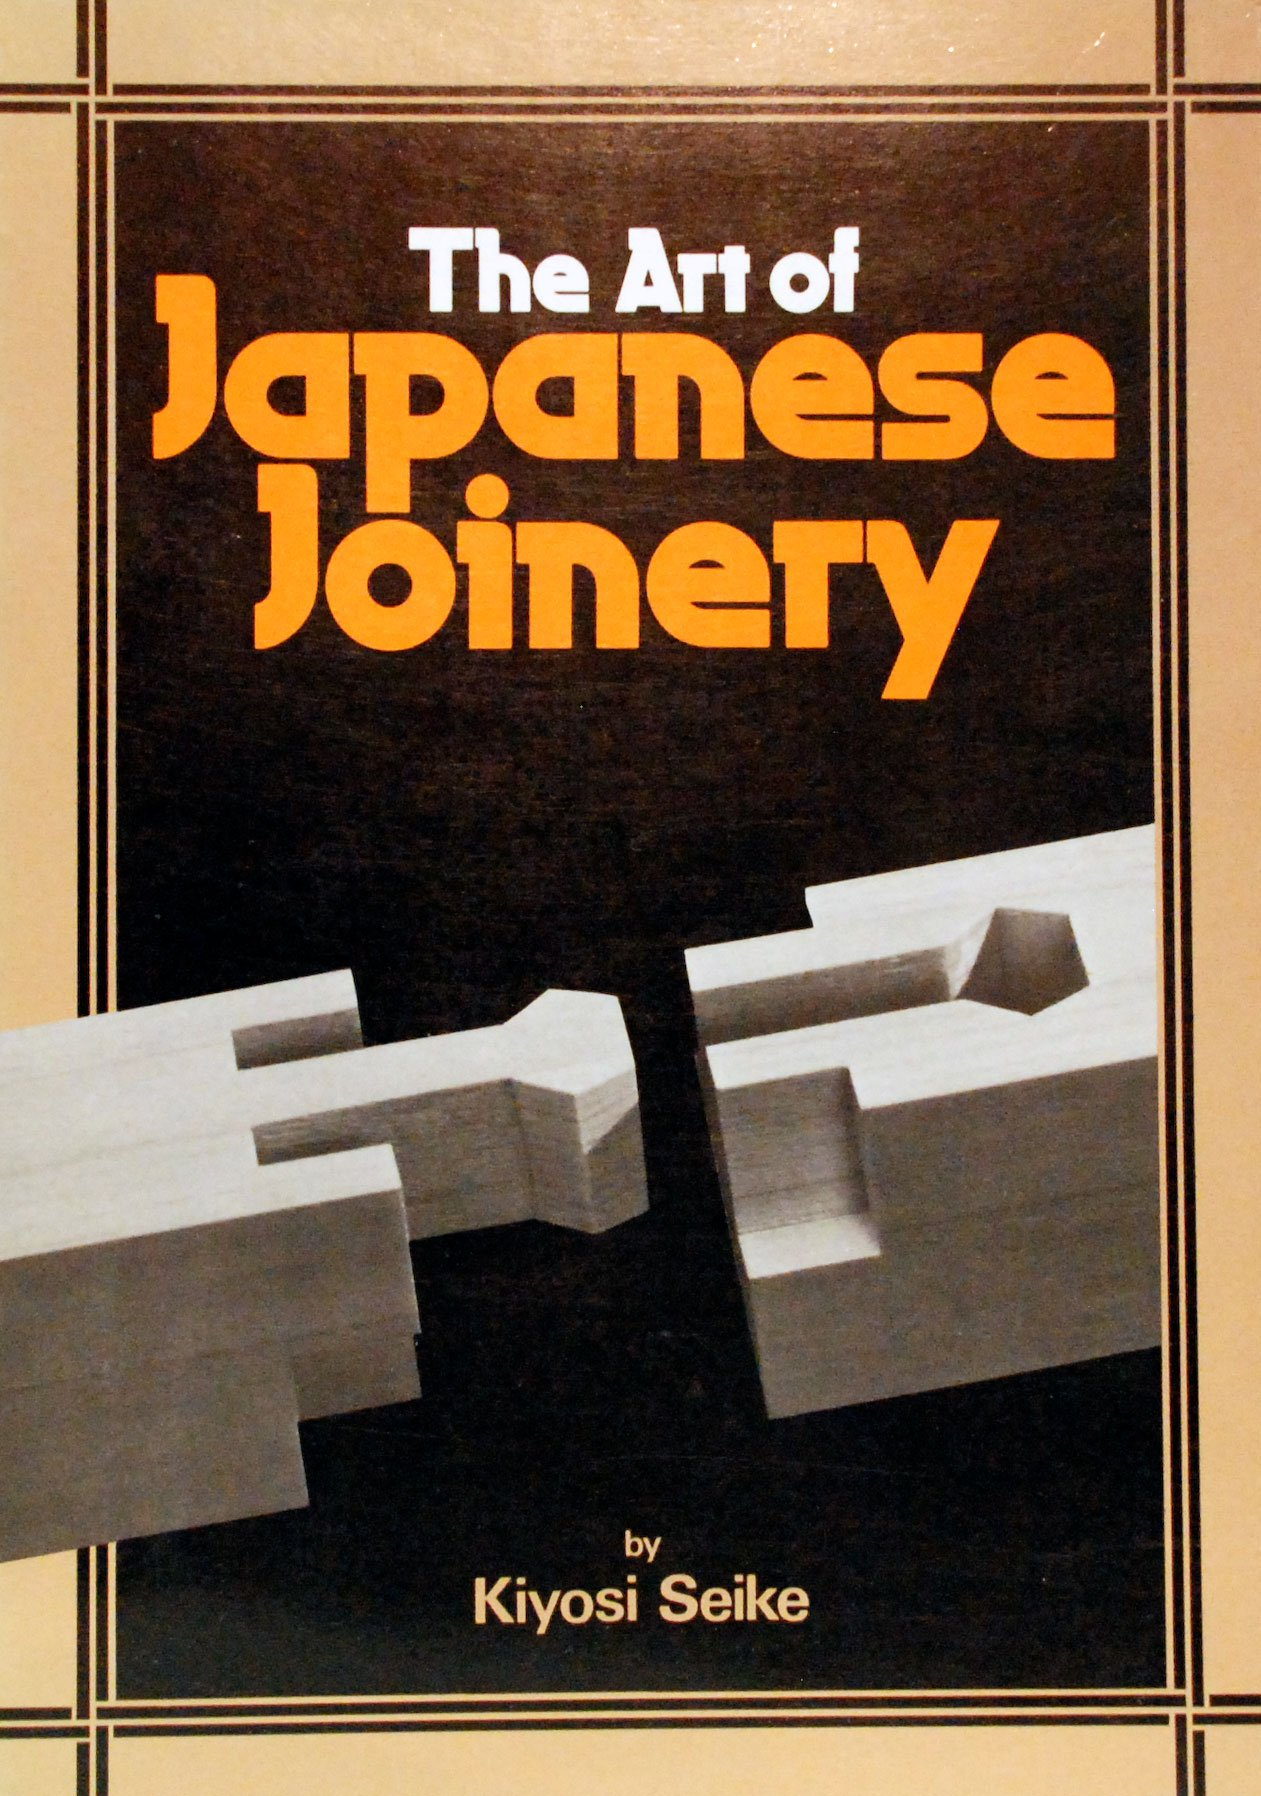 ART OF JAPANESE JOINERY EBOOK DOWNLOAD